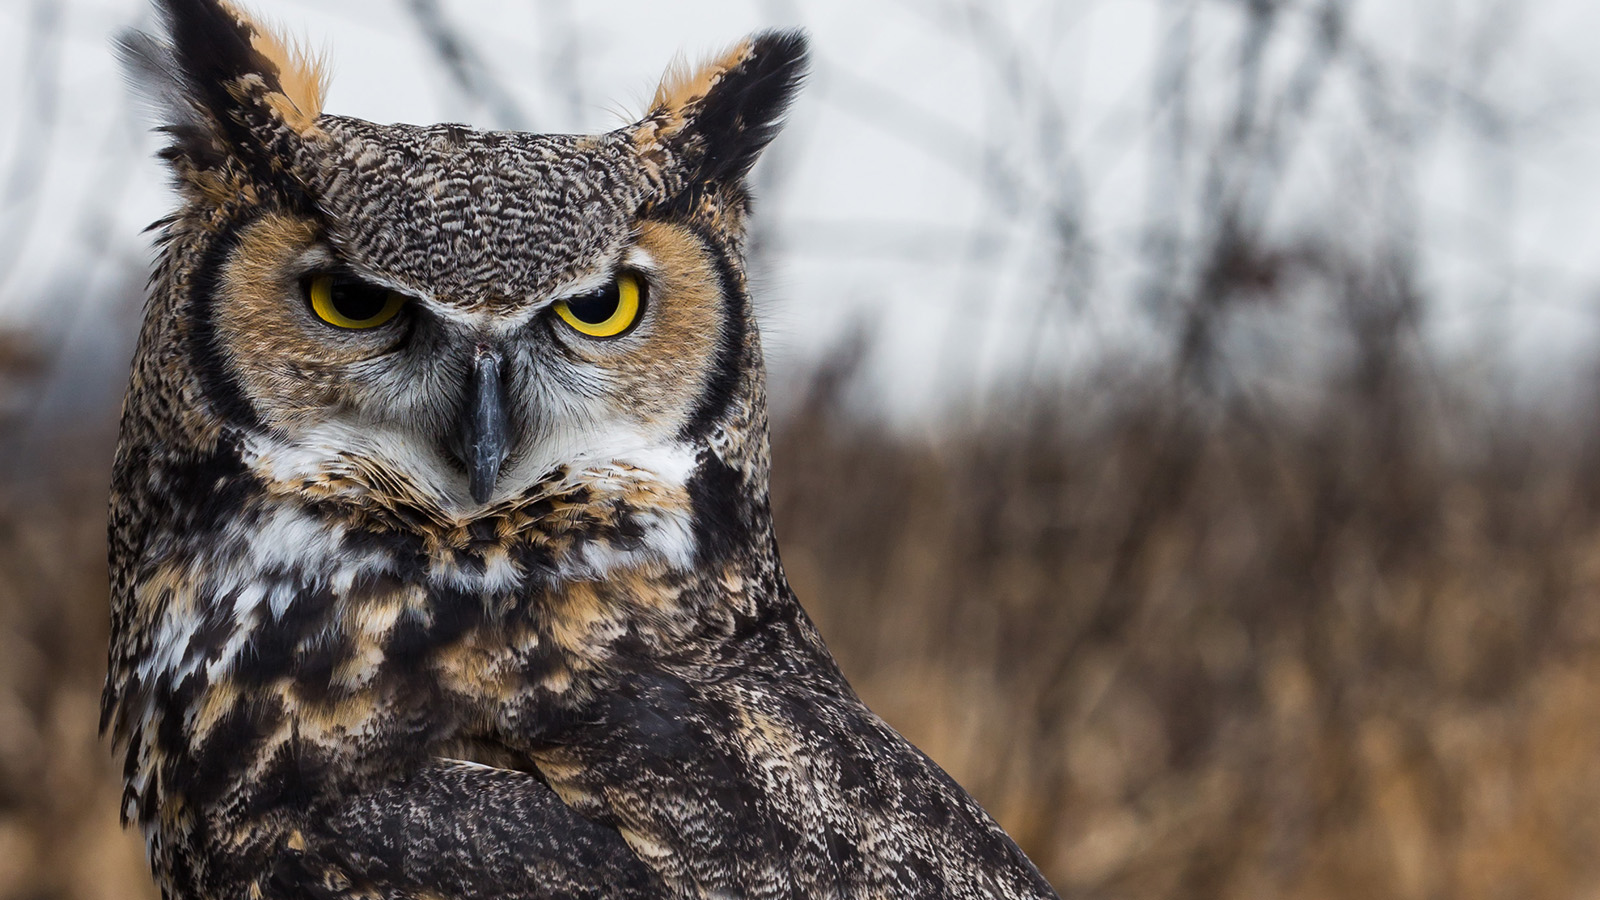 Great-horned owl with attitude